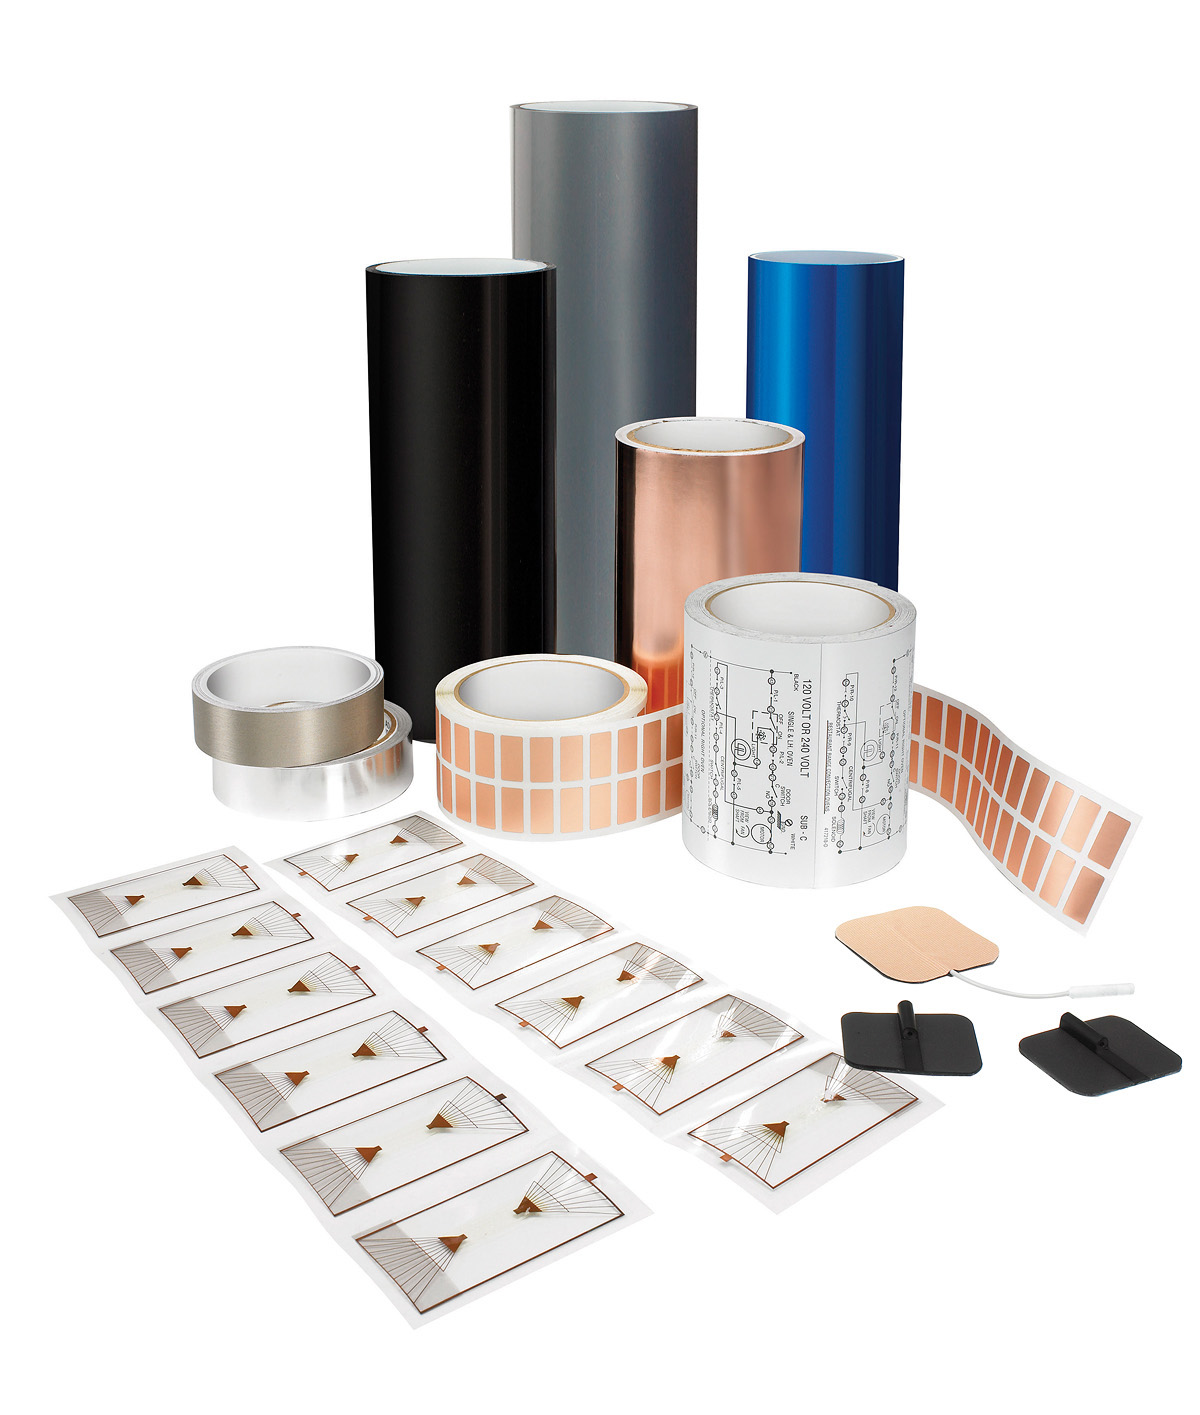 Global Adhesives Films Market share estimation, size expansion, demand, emerging trends, regional overview and forecast to 2026